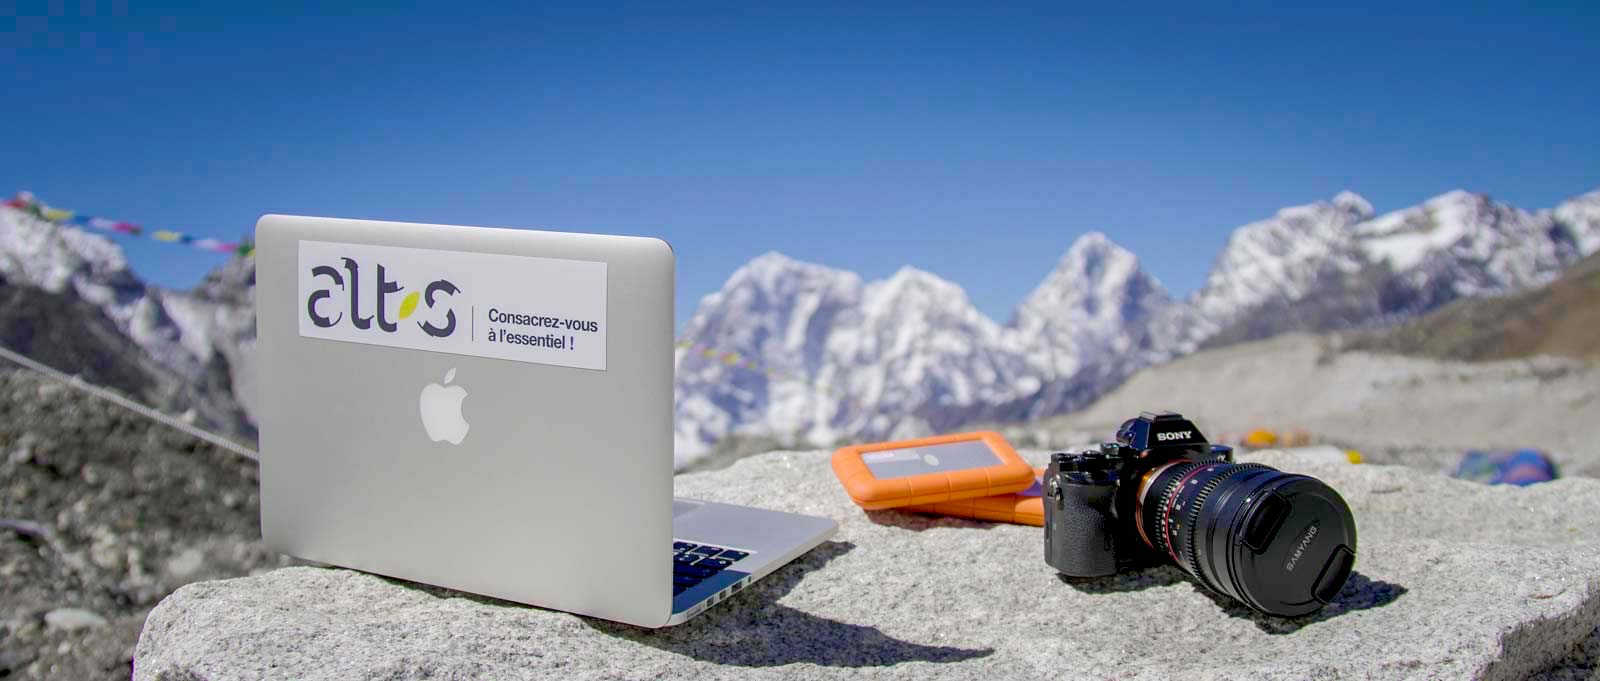 sony_a7s_macbookpro_everest.jpg